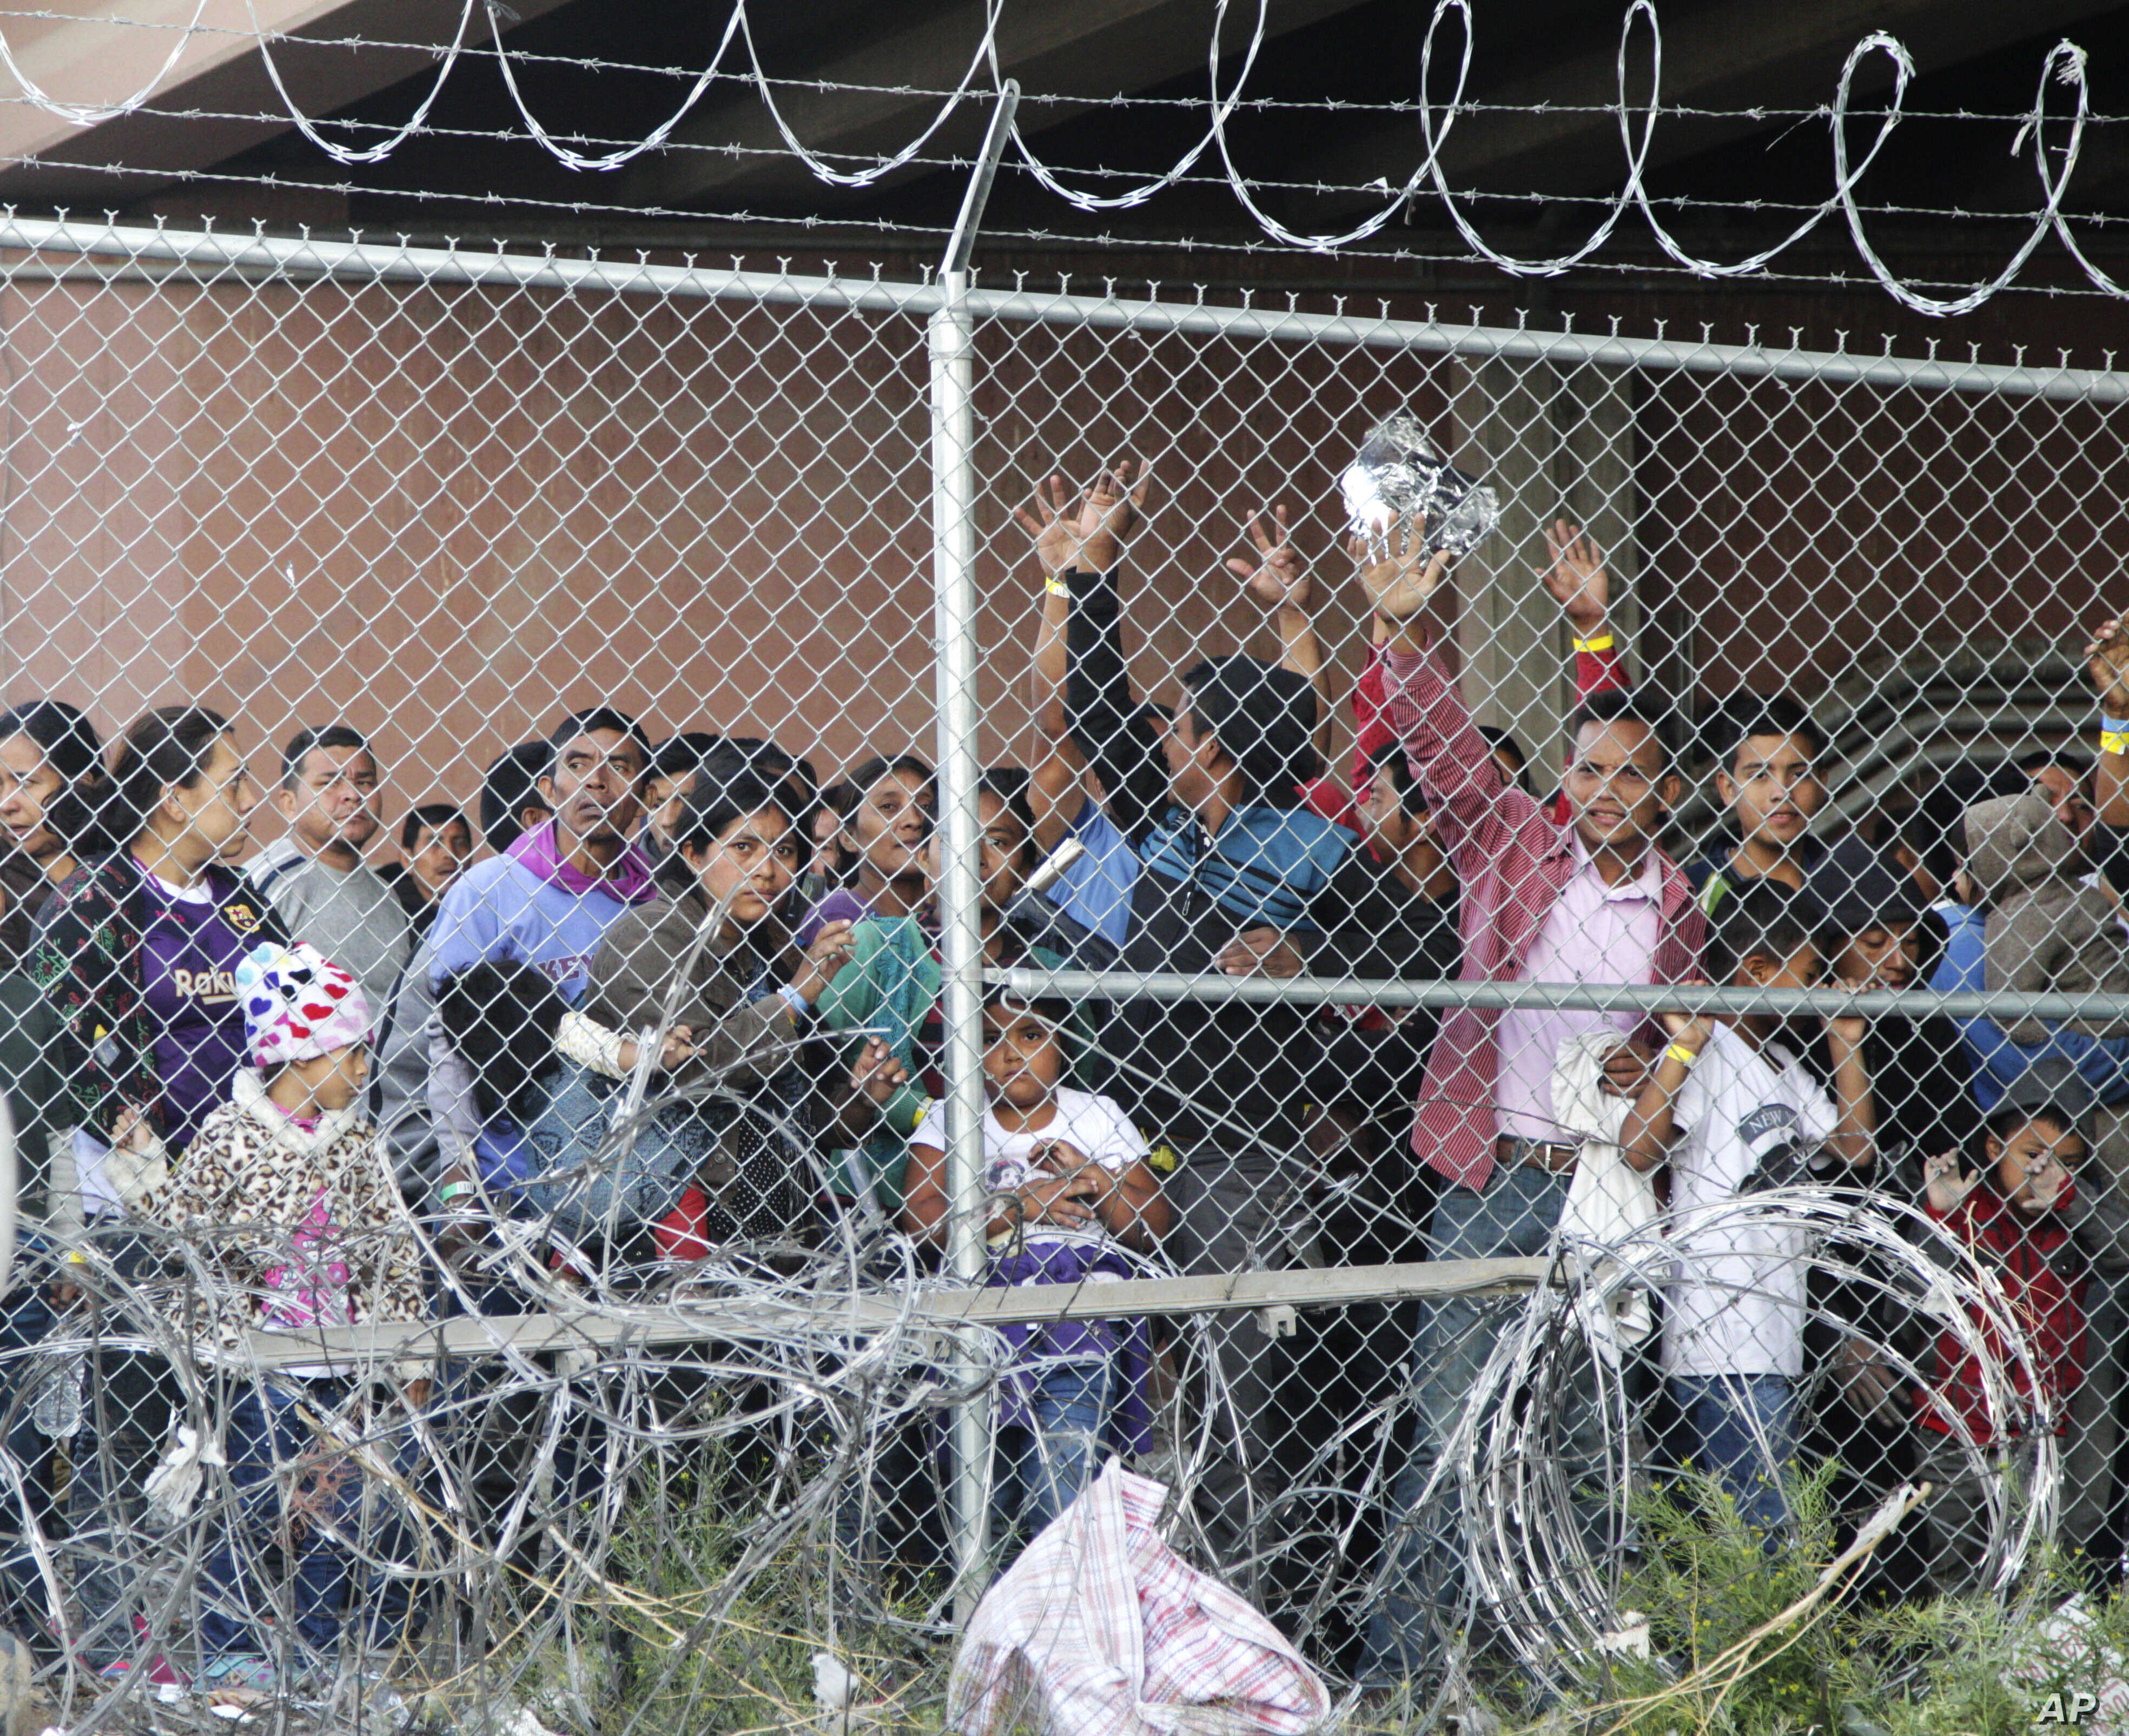 Central American migrants wait for food in El Paso, Texas, March 27, 2019, in a pen erected by U.S. Customs and Border Protection to process a surge of migrant families and unaccompanied minors.